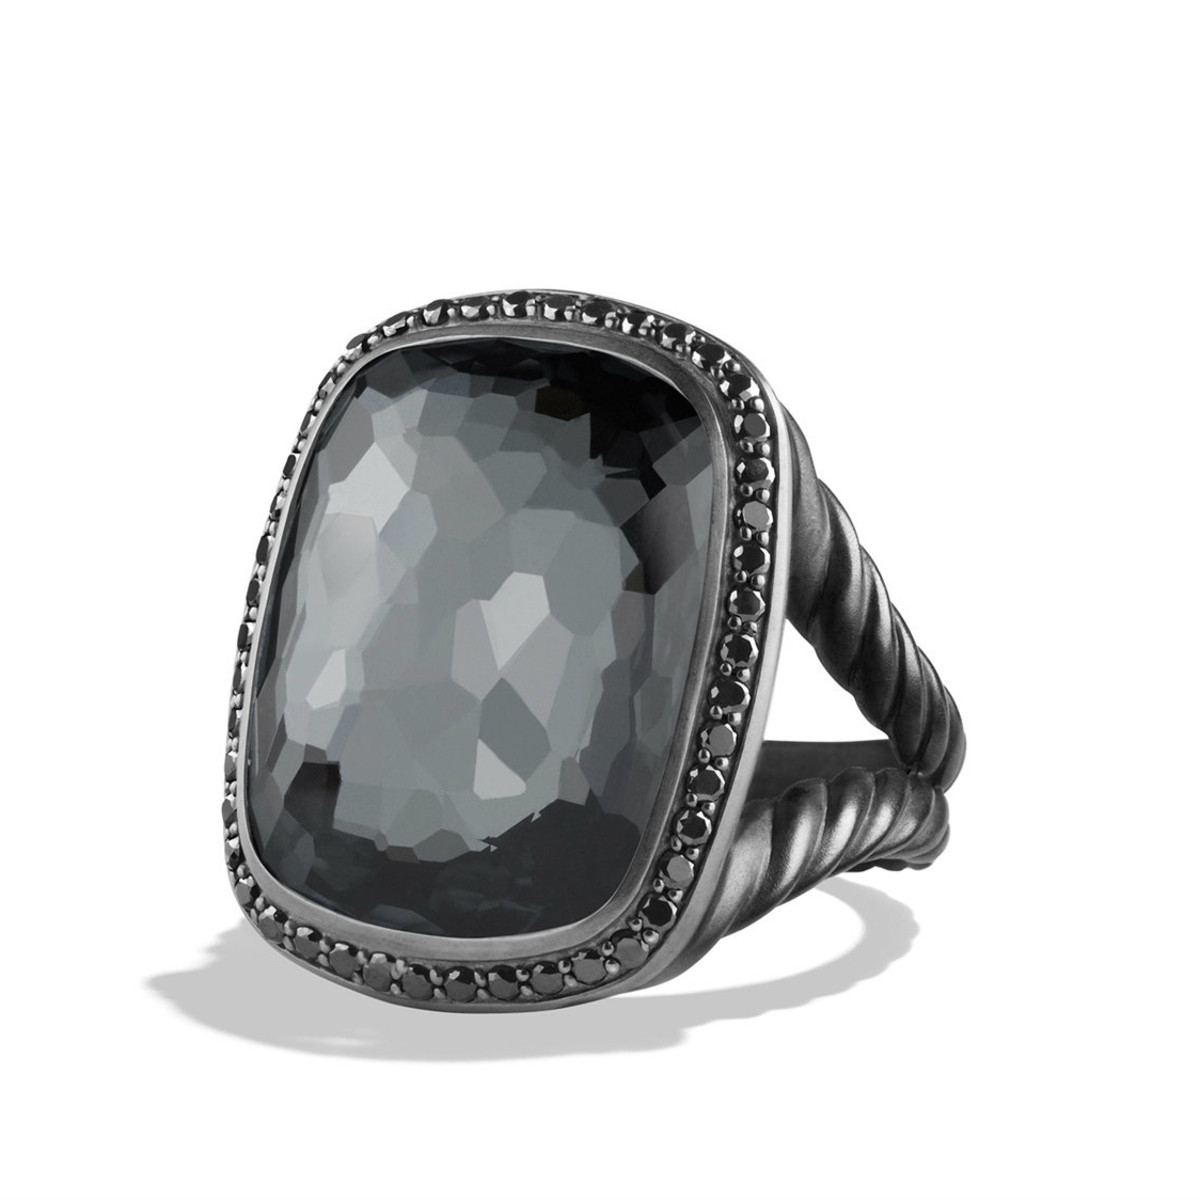 David Yurman Midnight Ice collection ring